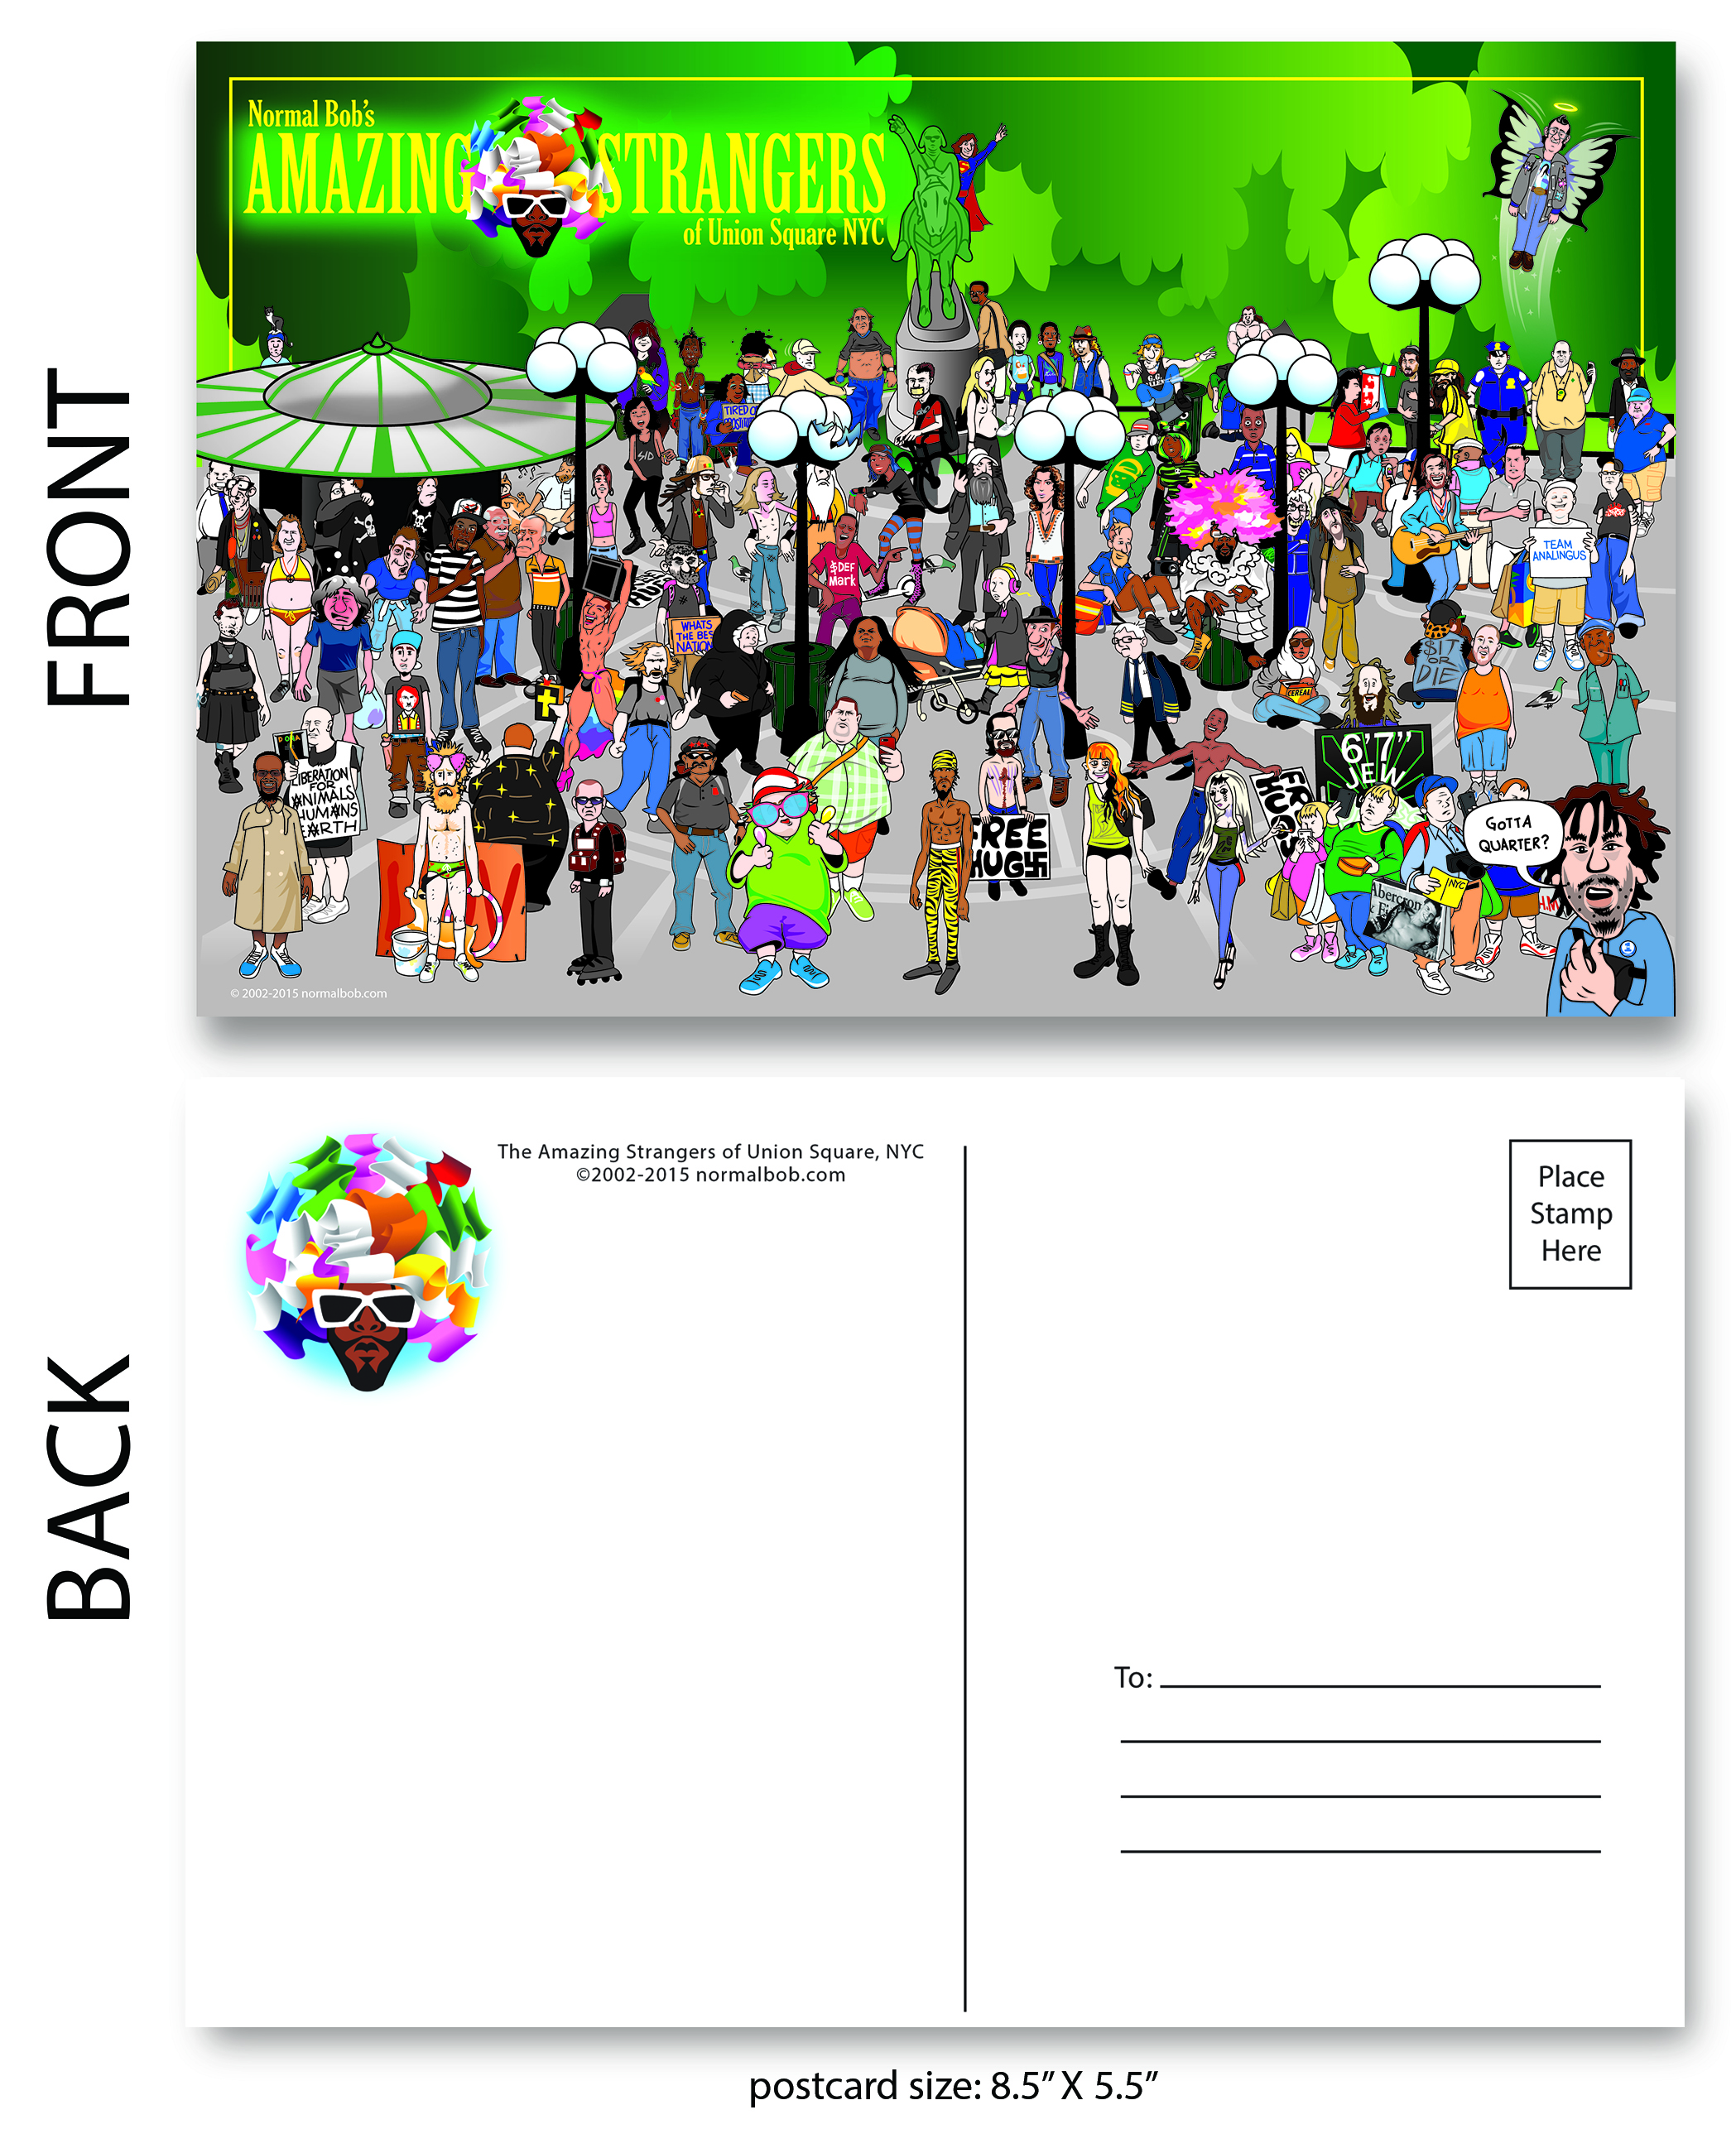 Union Square Amazing Strangers group photo postcard front& back     Quantity 	1 postcard $2.00 USD 	2 postcards $3.50 USD 	8 postcards $11.00 USD 	12 postcards $12.00 USD